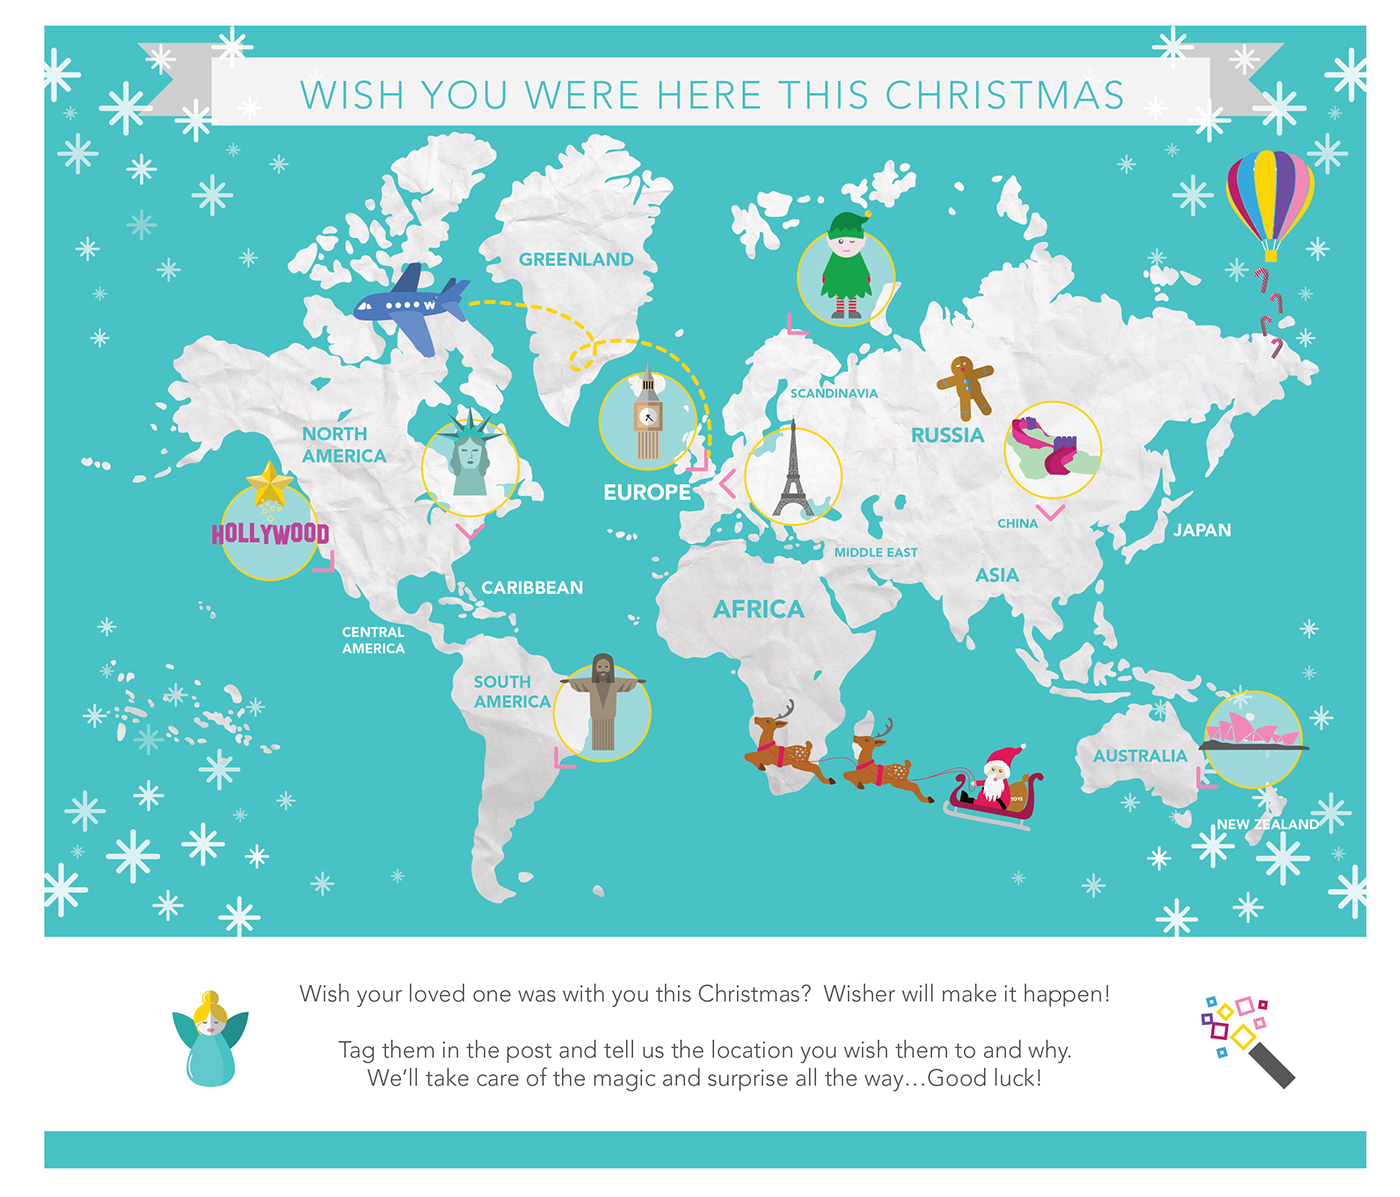 going hand in hand with this work was the creation of a fun christmas themed map highlighting various landmarks and holiday destinations